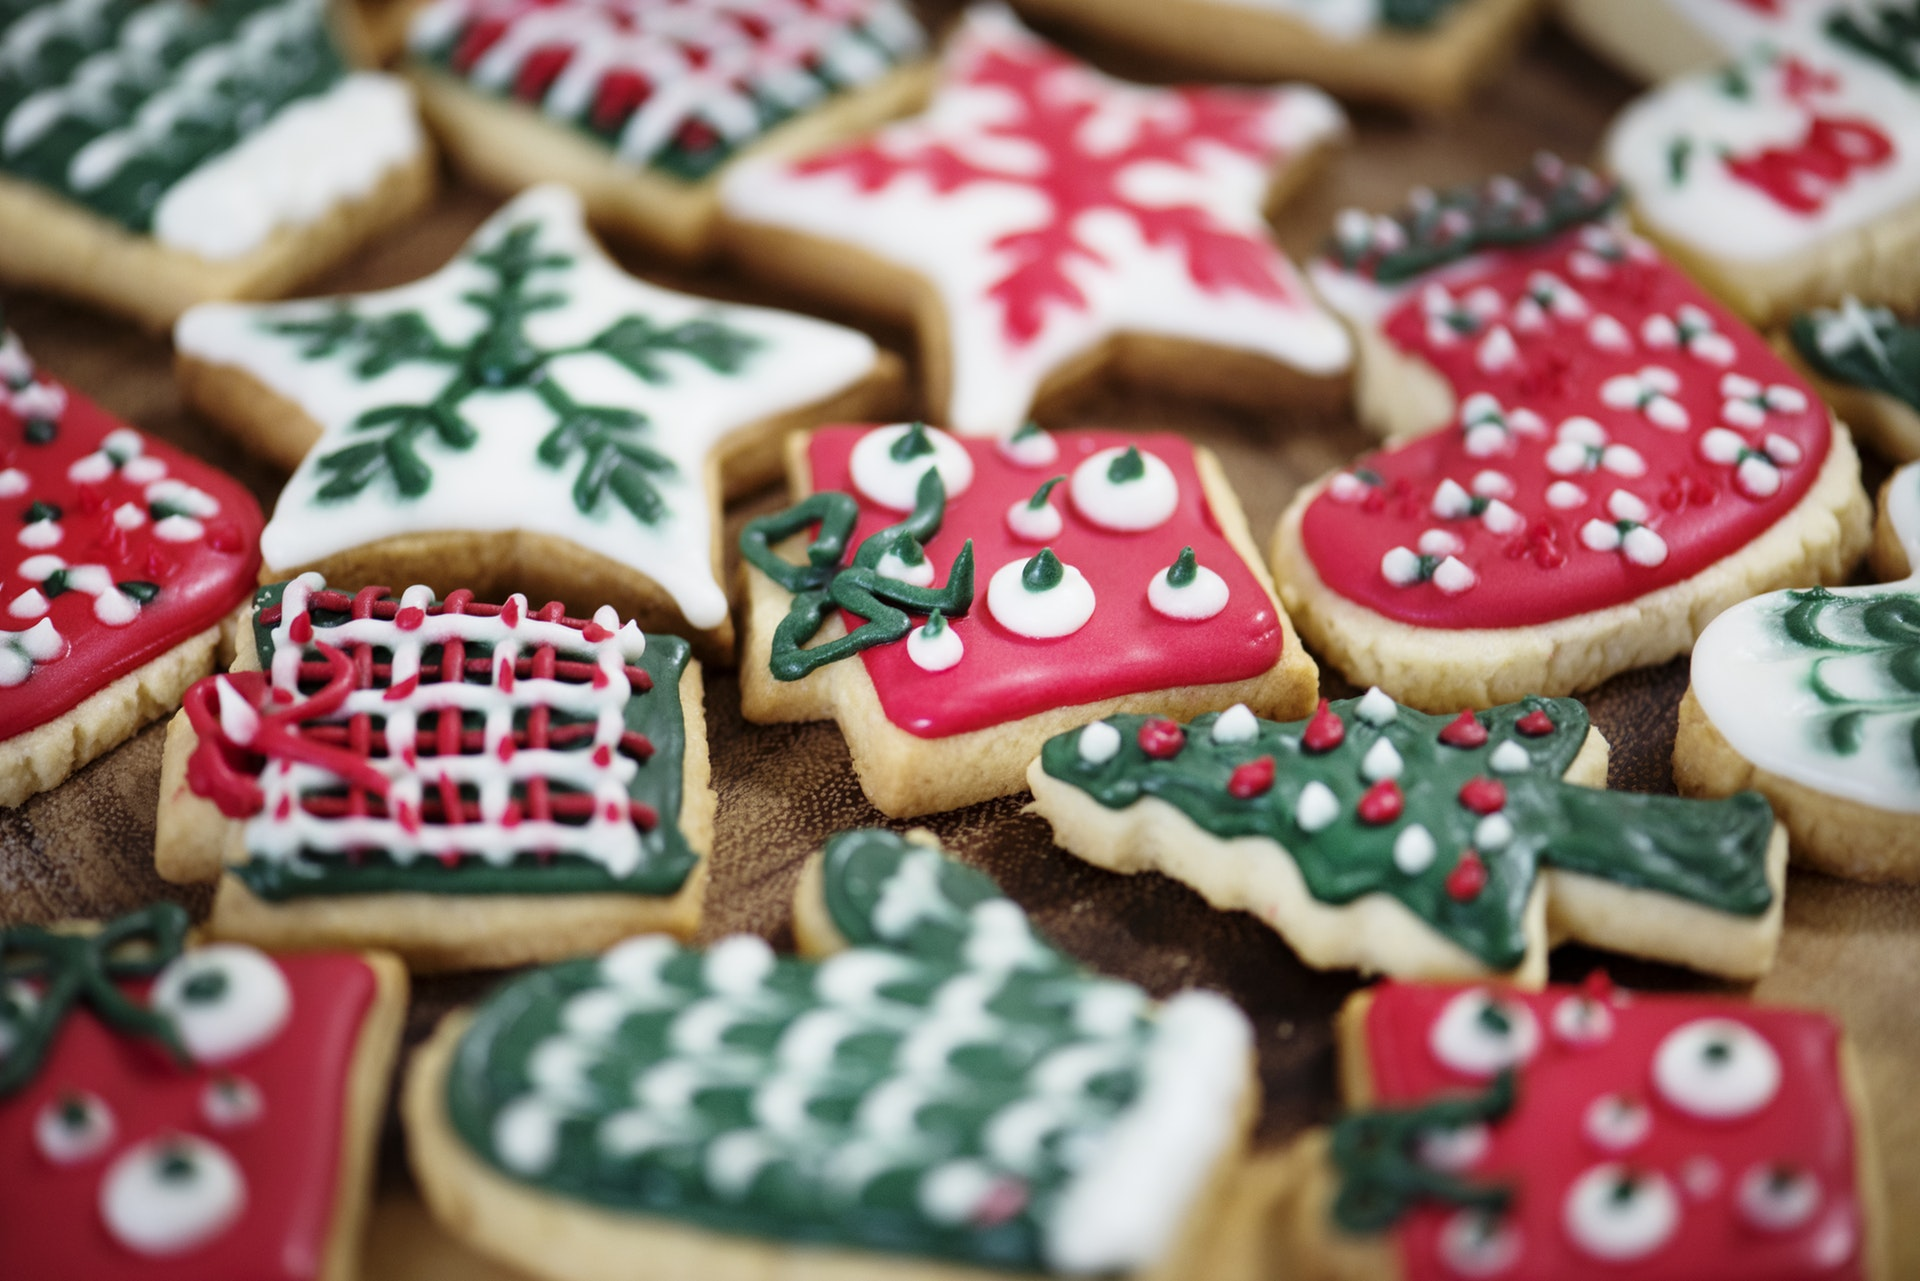 photo of decorated Christmas cookies